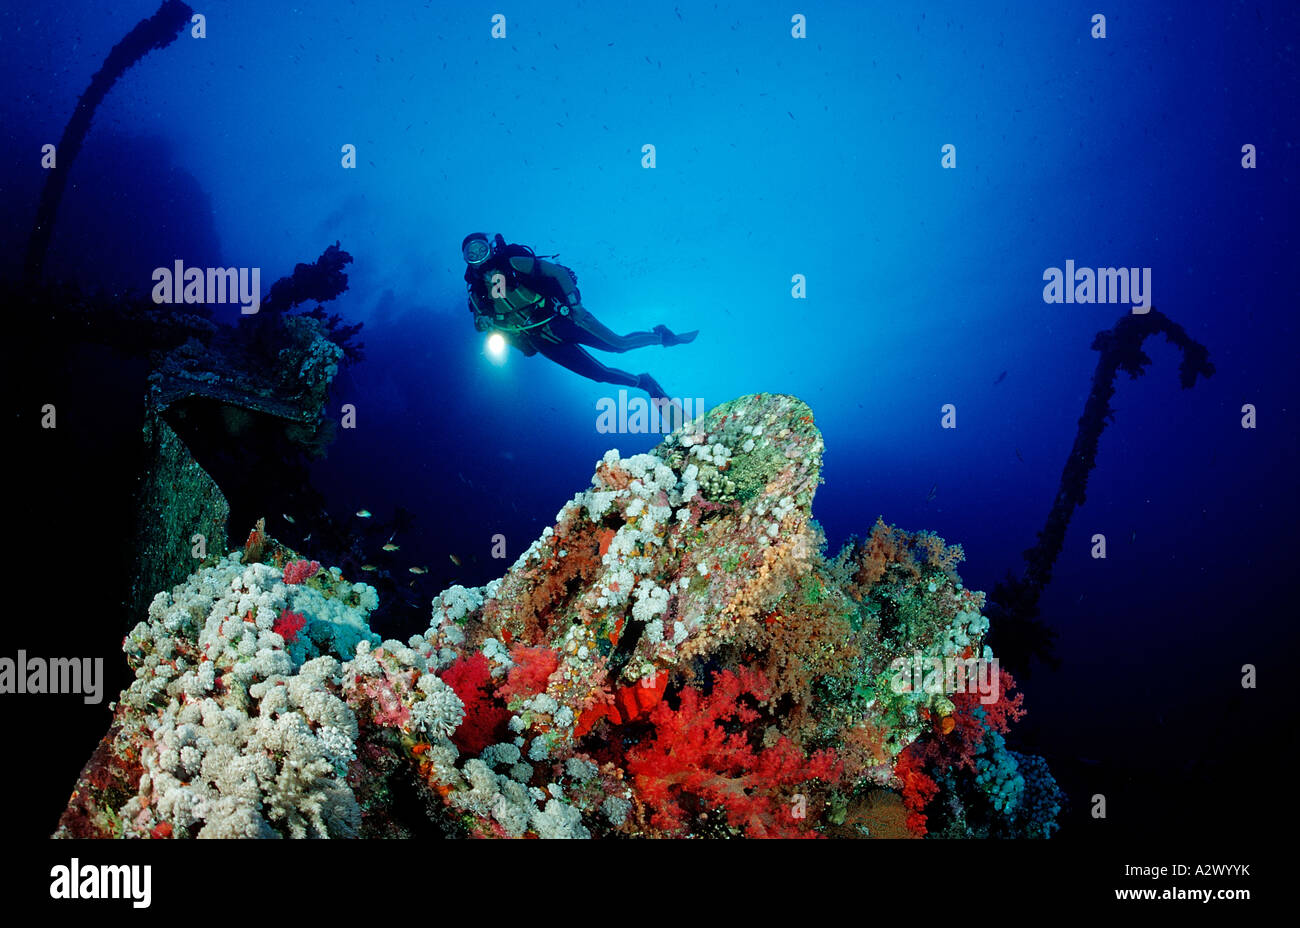 Scuba diver exploring shipwreck Numibia Egypt Africa Red Sea - Stock Image